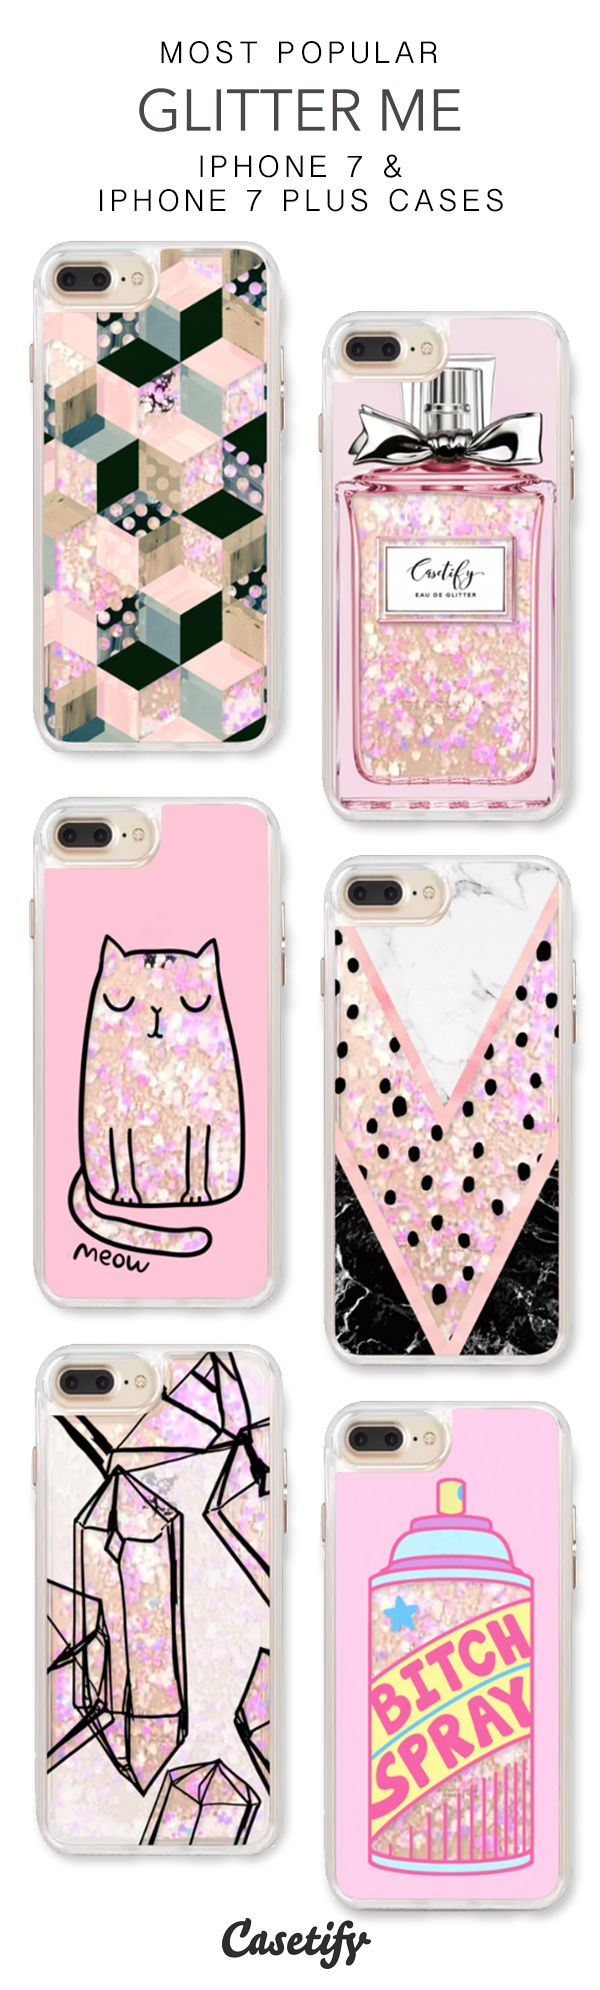 Most Popular Glitter Me iPhone 7 Cases & iPhone 7 Plus Cases. More glitter iPhone case here > https://www.casetify.com/en_US/collections/iphone-7-glitter-cases#/?vc=j2XffT8TMI